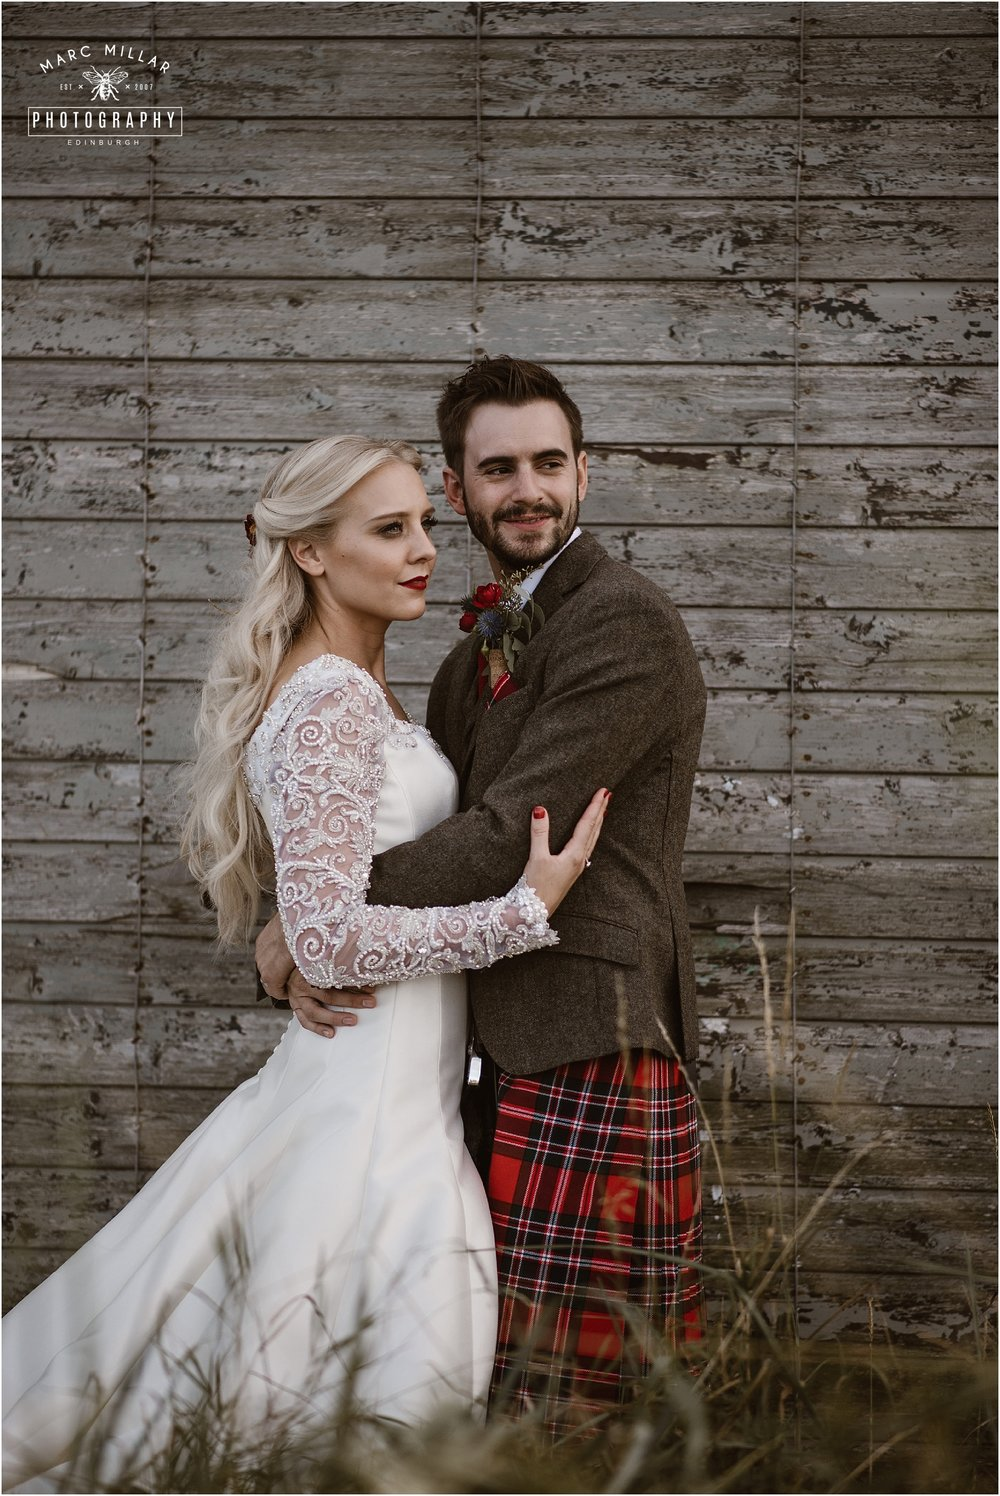 Kinkell Byre Wedding Shoot by Marc Millar Photography